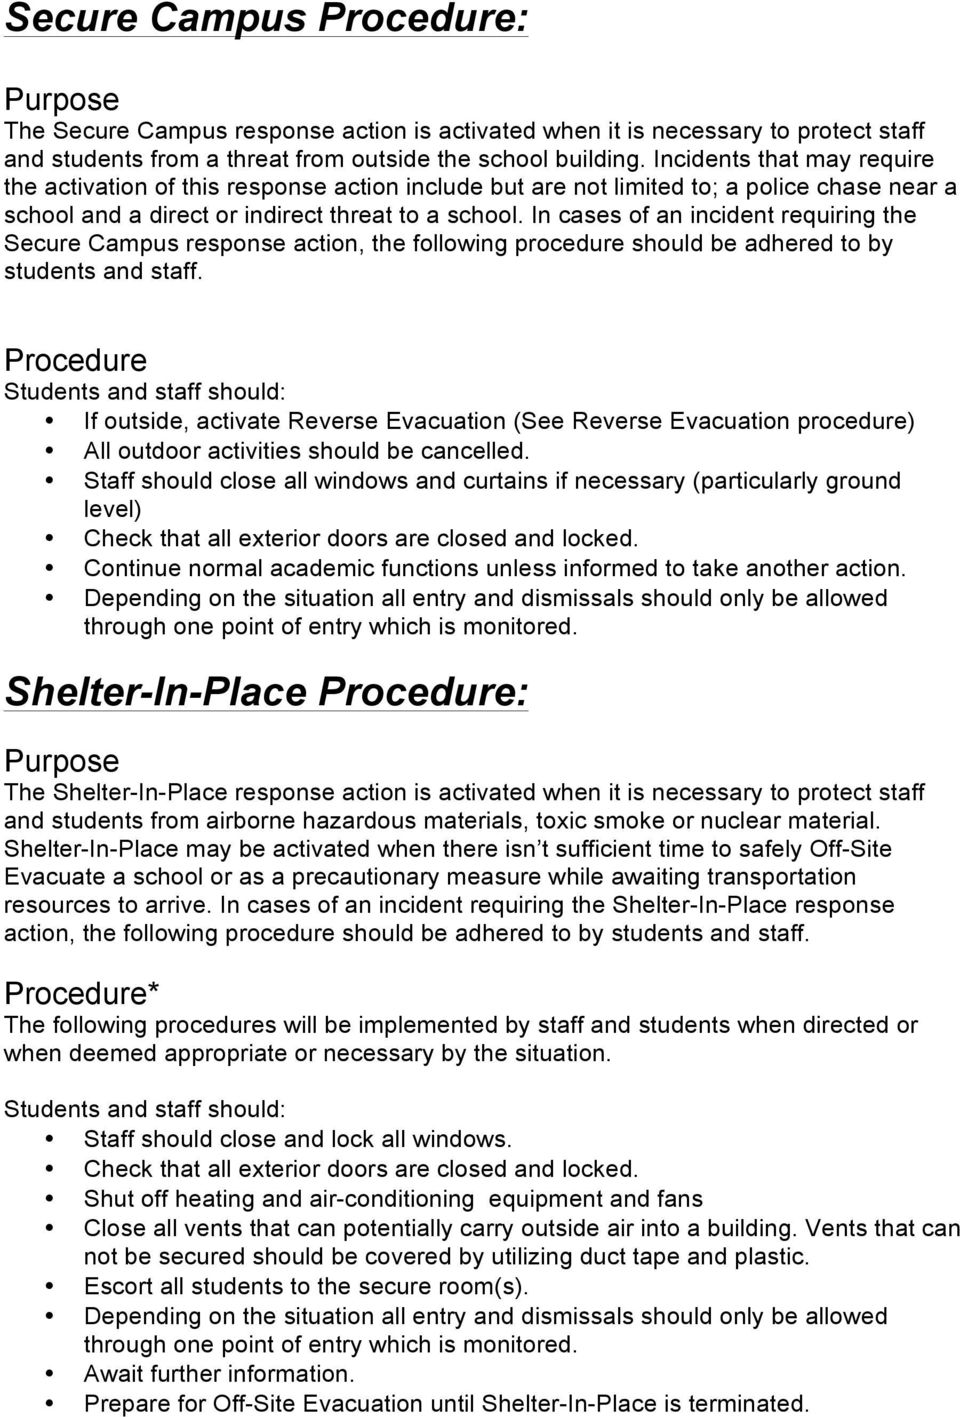 In cases of an incident requiring the Secure Campus response action, the following procedure should be adhered to by students and staff.